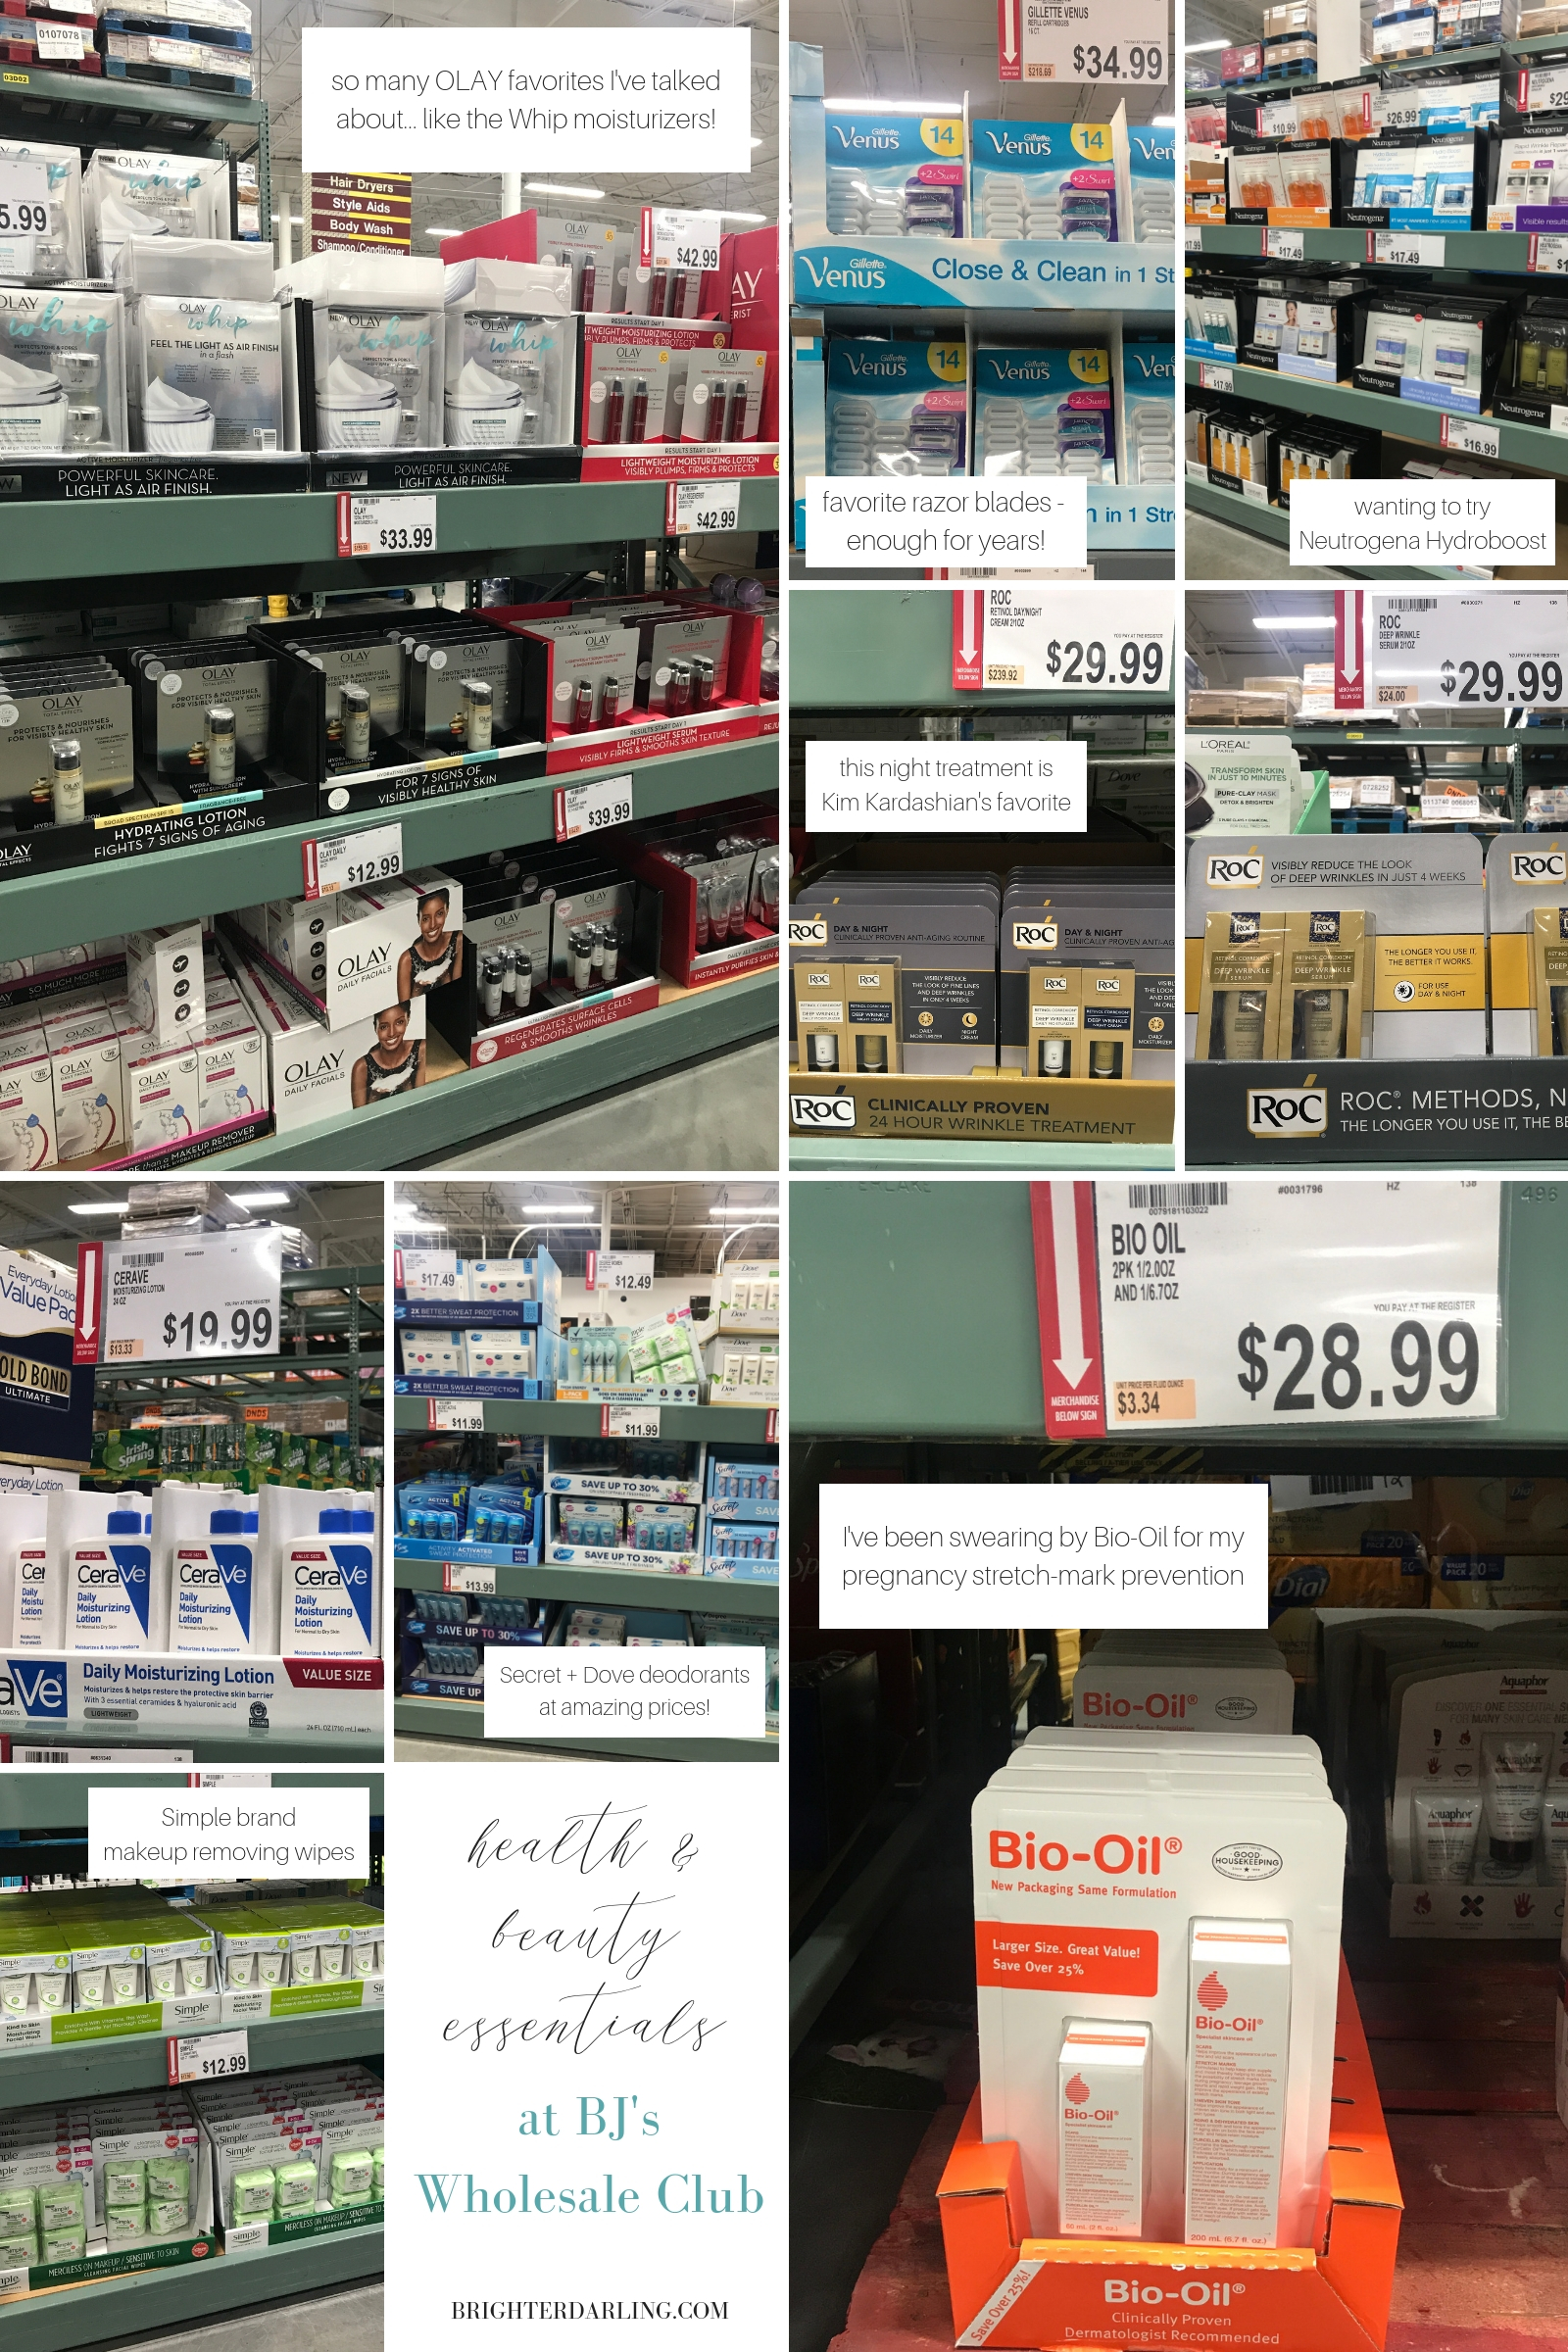 health and beauty essentials at BJs Wholesale Club   Brighter Darling Blog